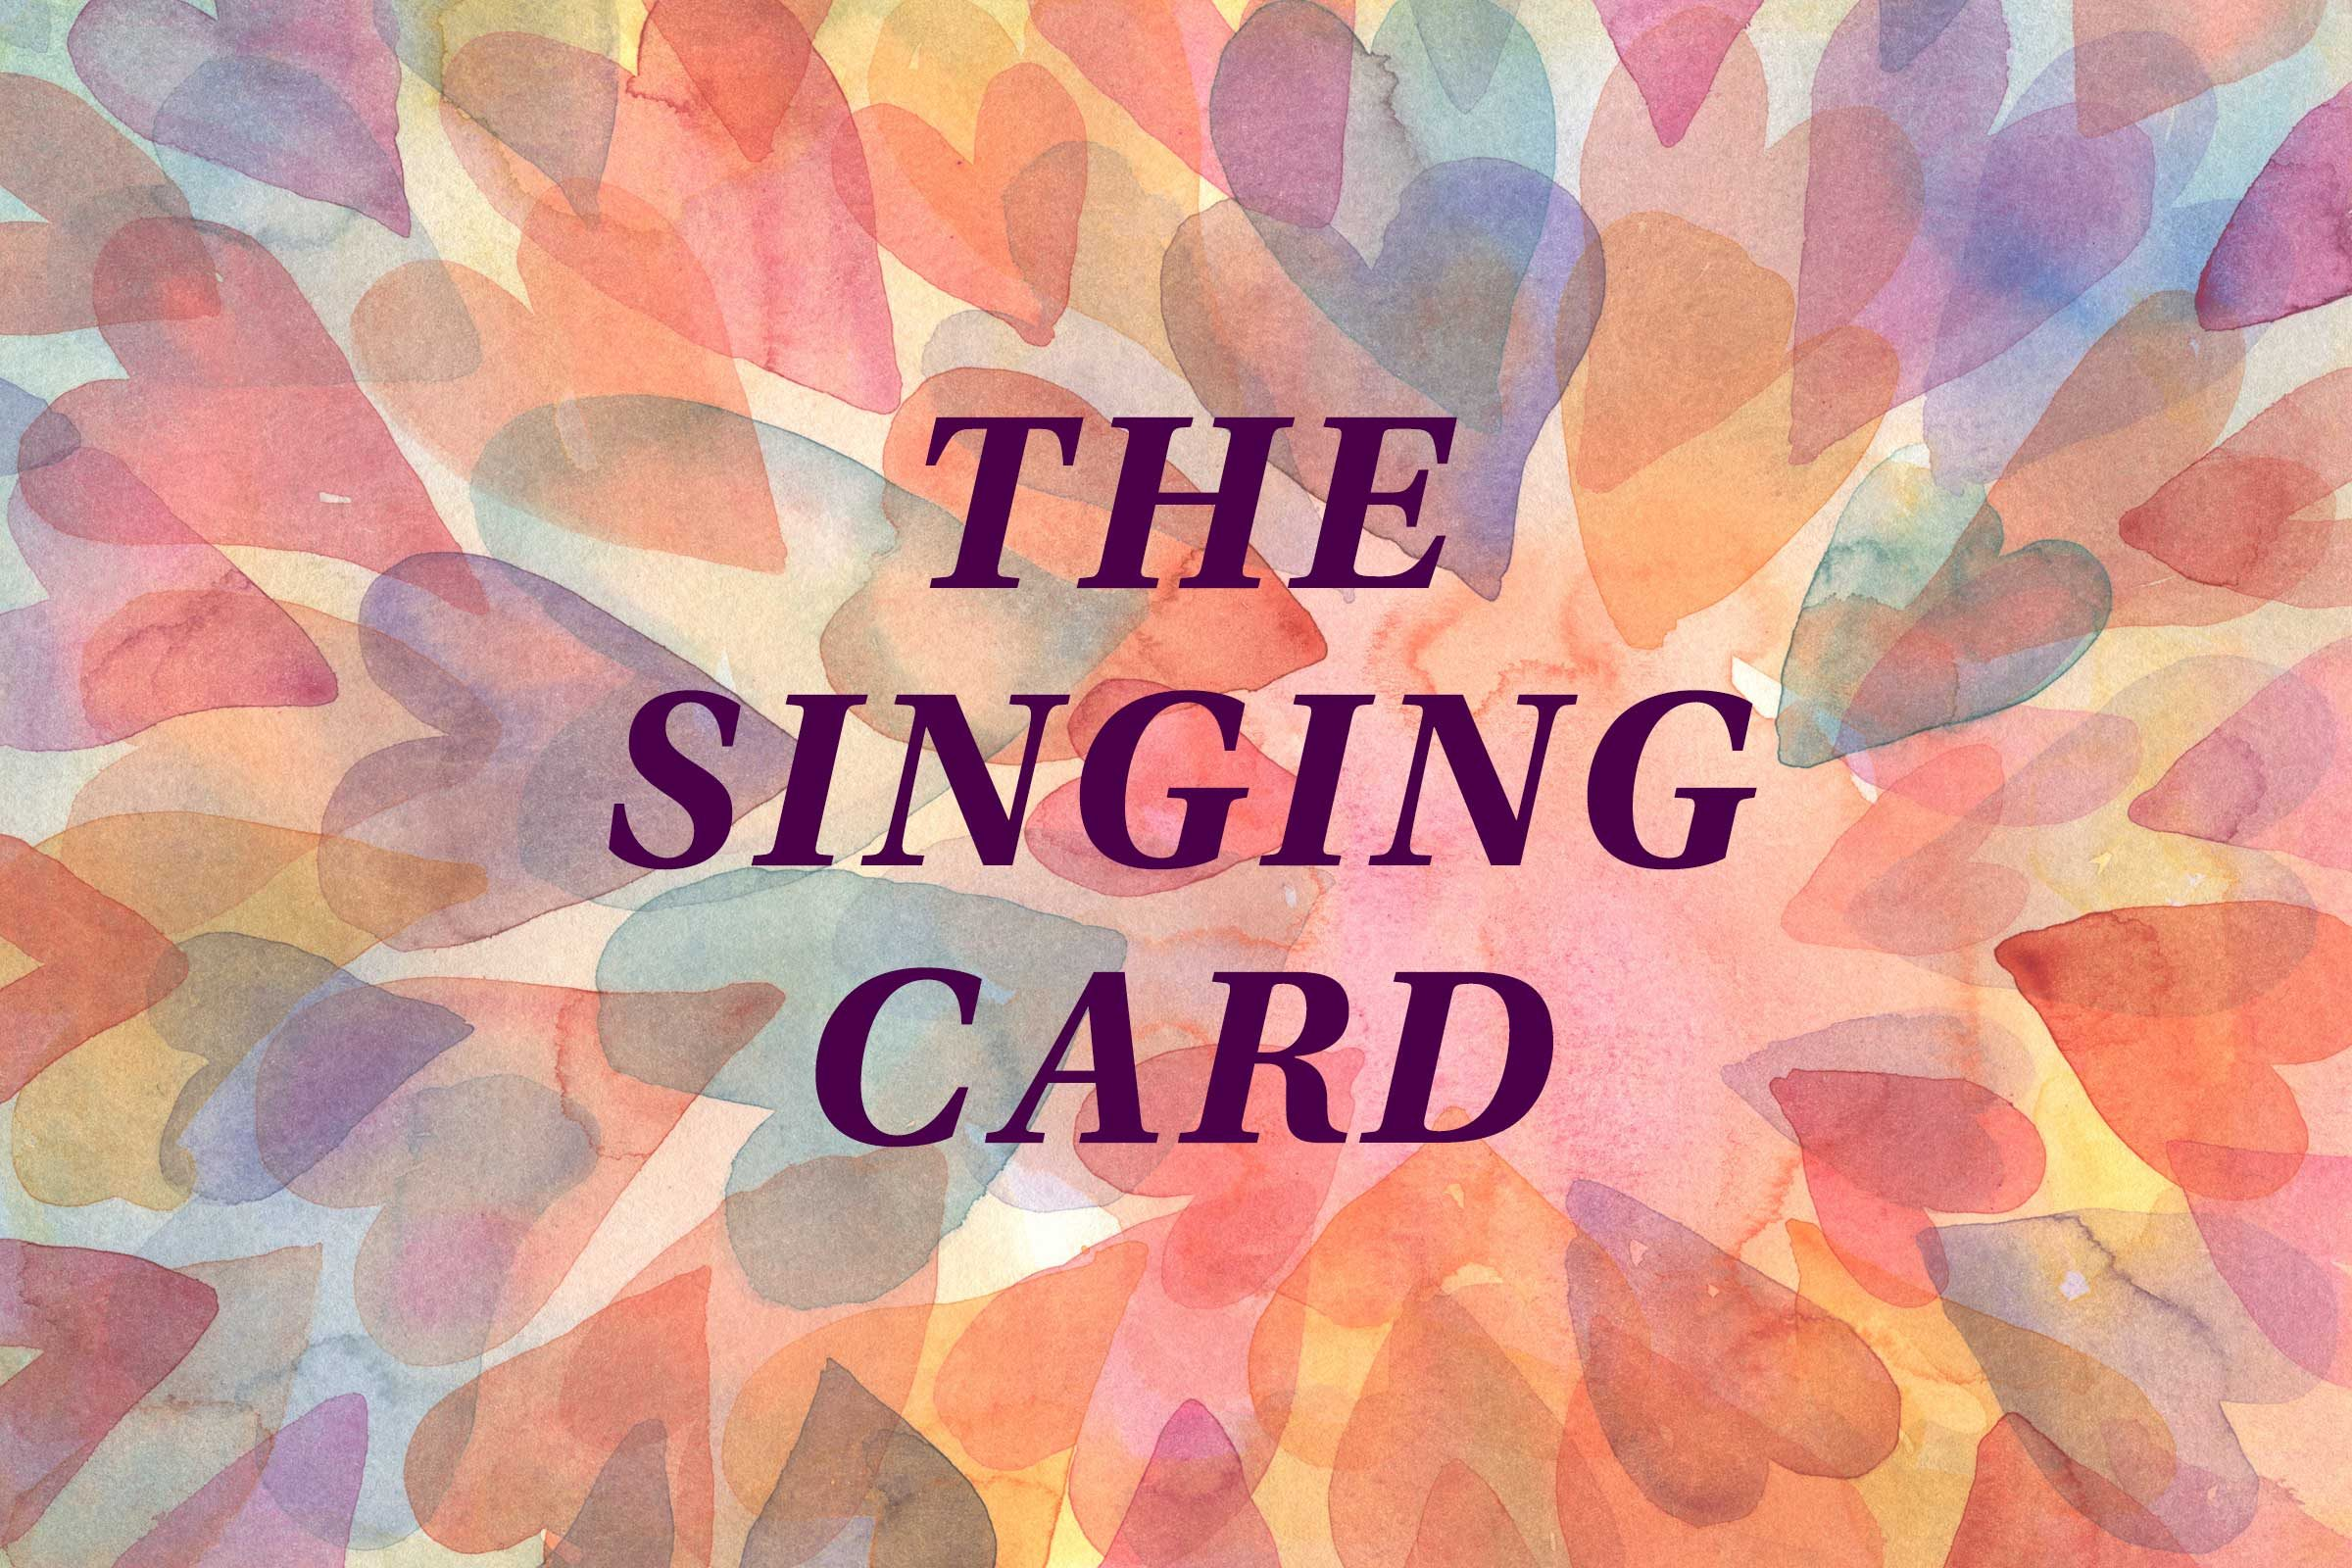 The Singing Card